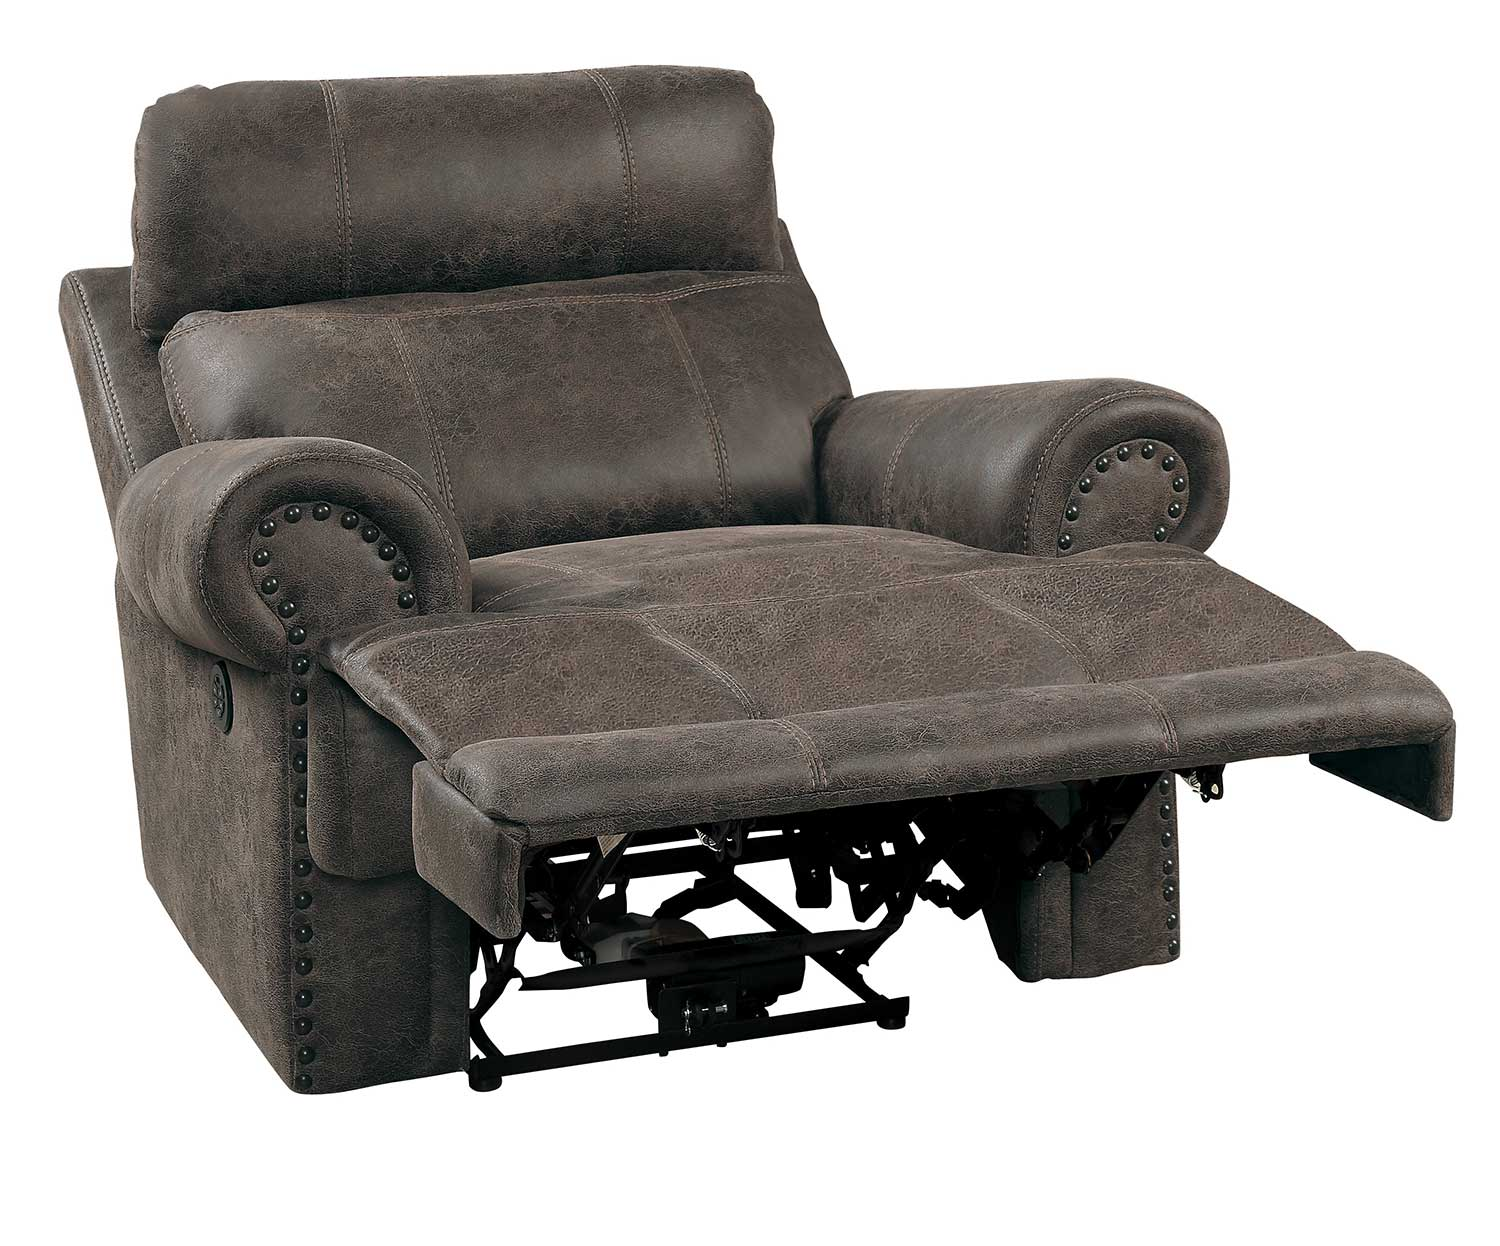 Homelegance Aggiano Power Reclining Chair With Power Headrest - Dark Brown